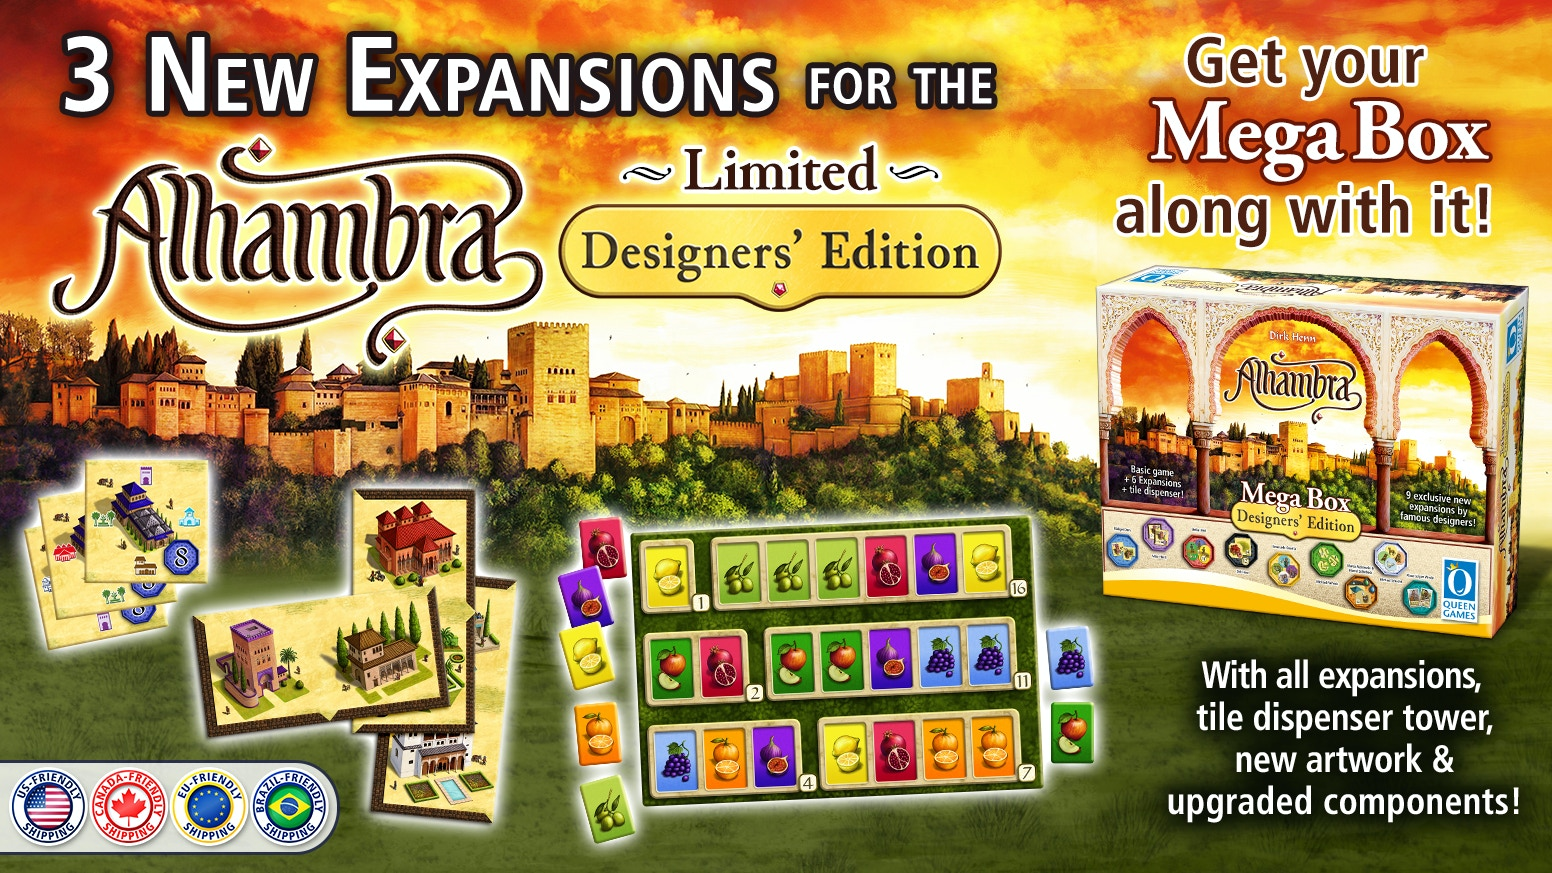 A chance to get the Designers' Edition as well as 3 new expansions!